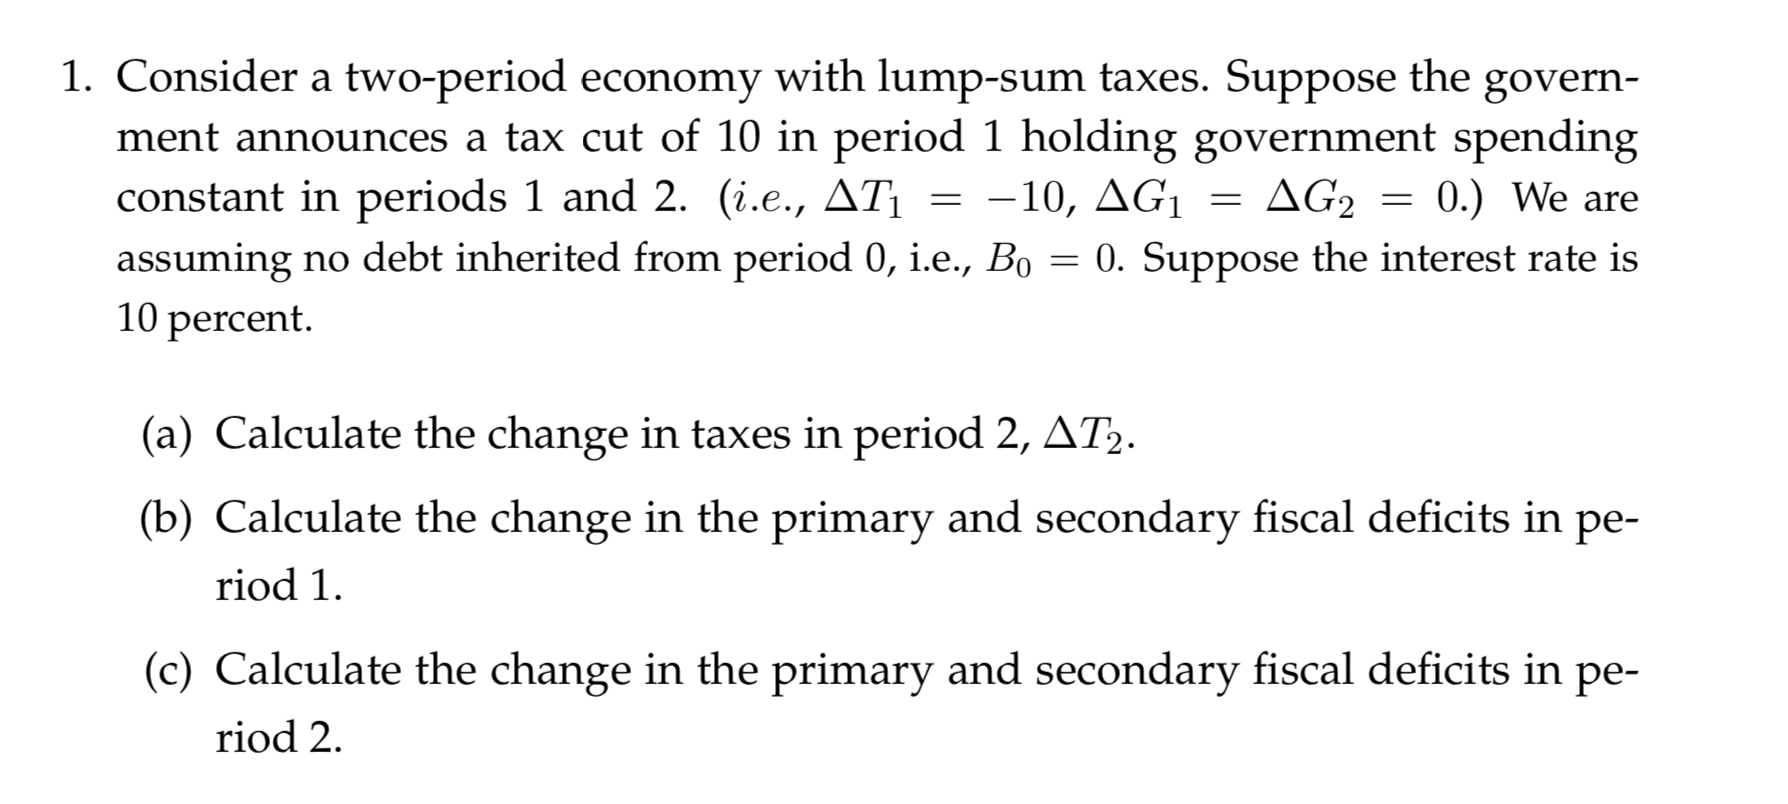 1. Consider a two-period economy with lump-sum taxes. Suppose the ment announces a tax cut of 10 in period 1 holding government spending constant in periods 1 and 2. (i.e., AT assuming no debt inherited from period 0, i.e., Bo 10 percent govern ΔG, 0.) We are -10, AG1 0. Suppose the interest rate is (a) Calculate the change in taxes in period 2, AT2. (b) Calculate the change in the primary and secondary fiscal deficits in ре- riod 1 (c) Calculate the change in the primary and secondary fiscal deficits in pe- riod 2